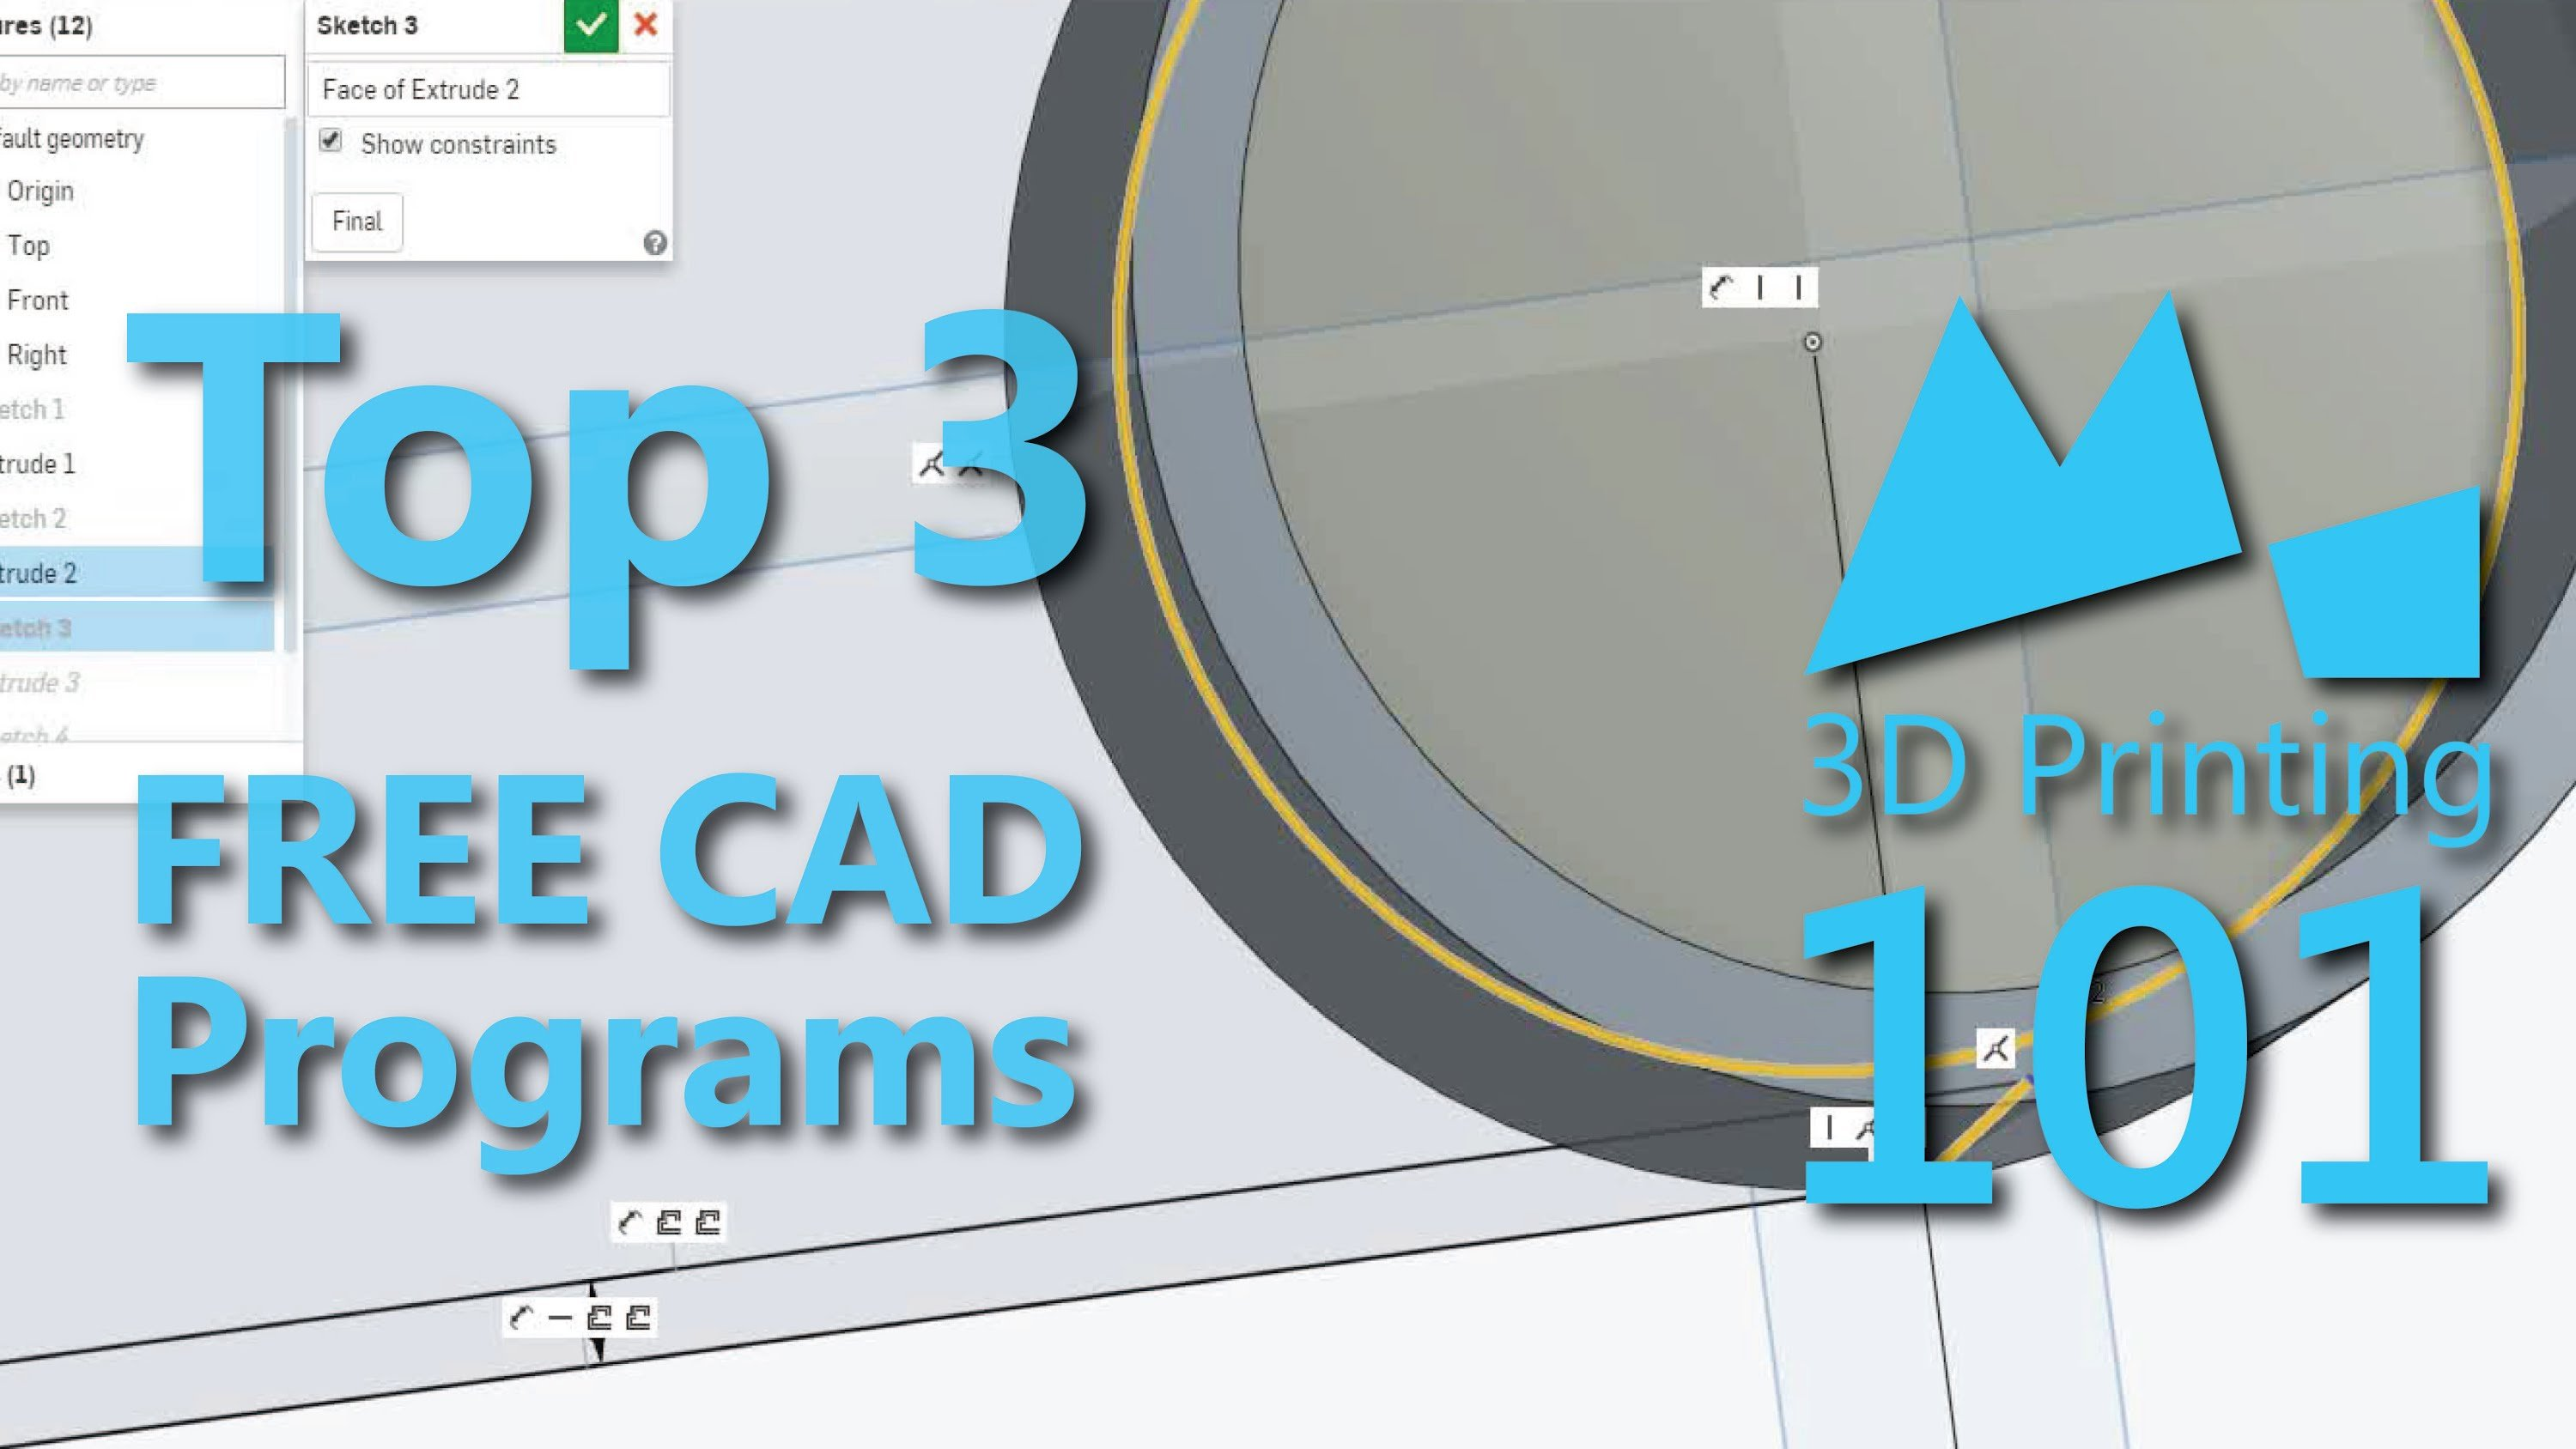 Top 3 free cad for 3dprinting adafruit industries Free 3d cad software